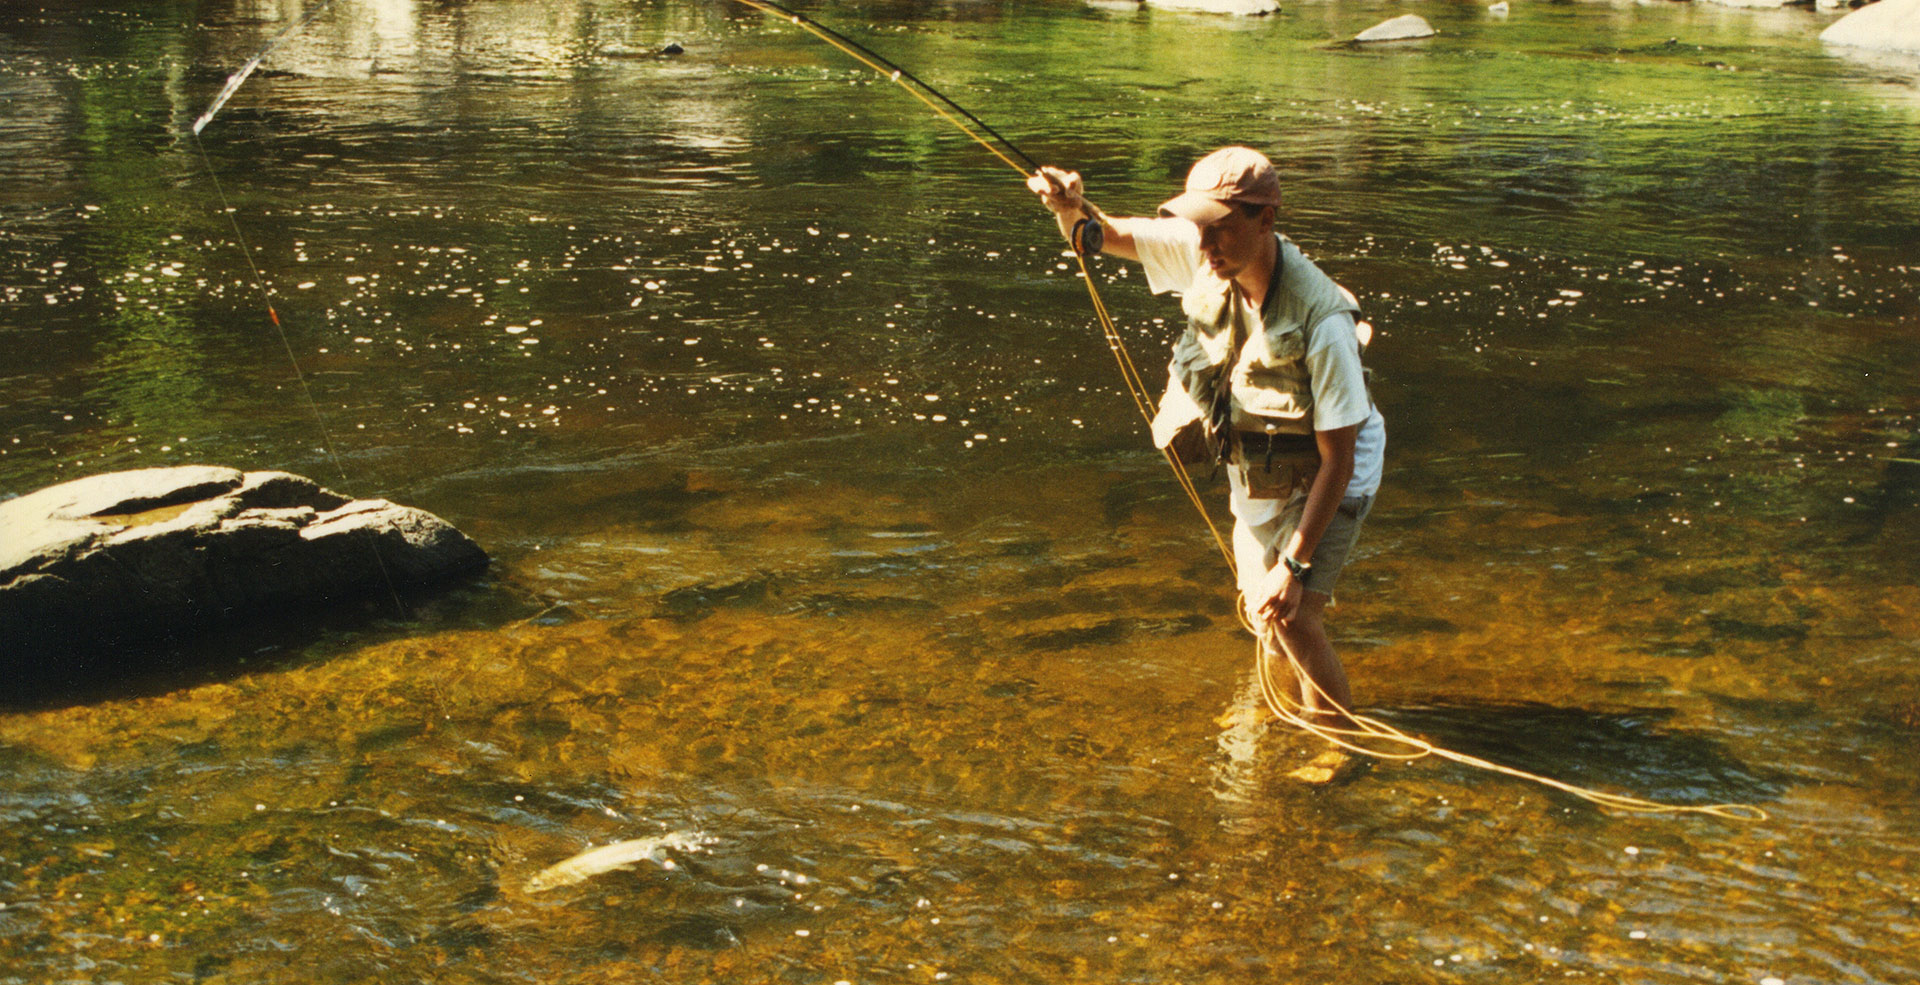 Fly fishing the trout rivers of the Adirondacks